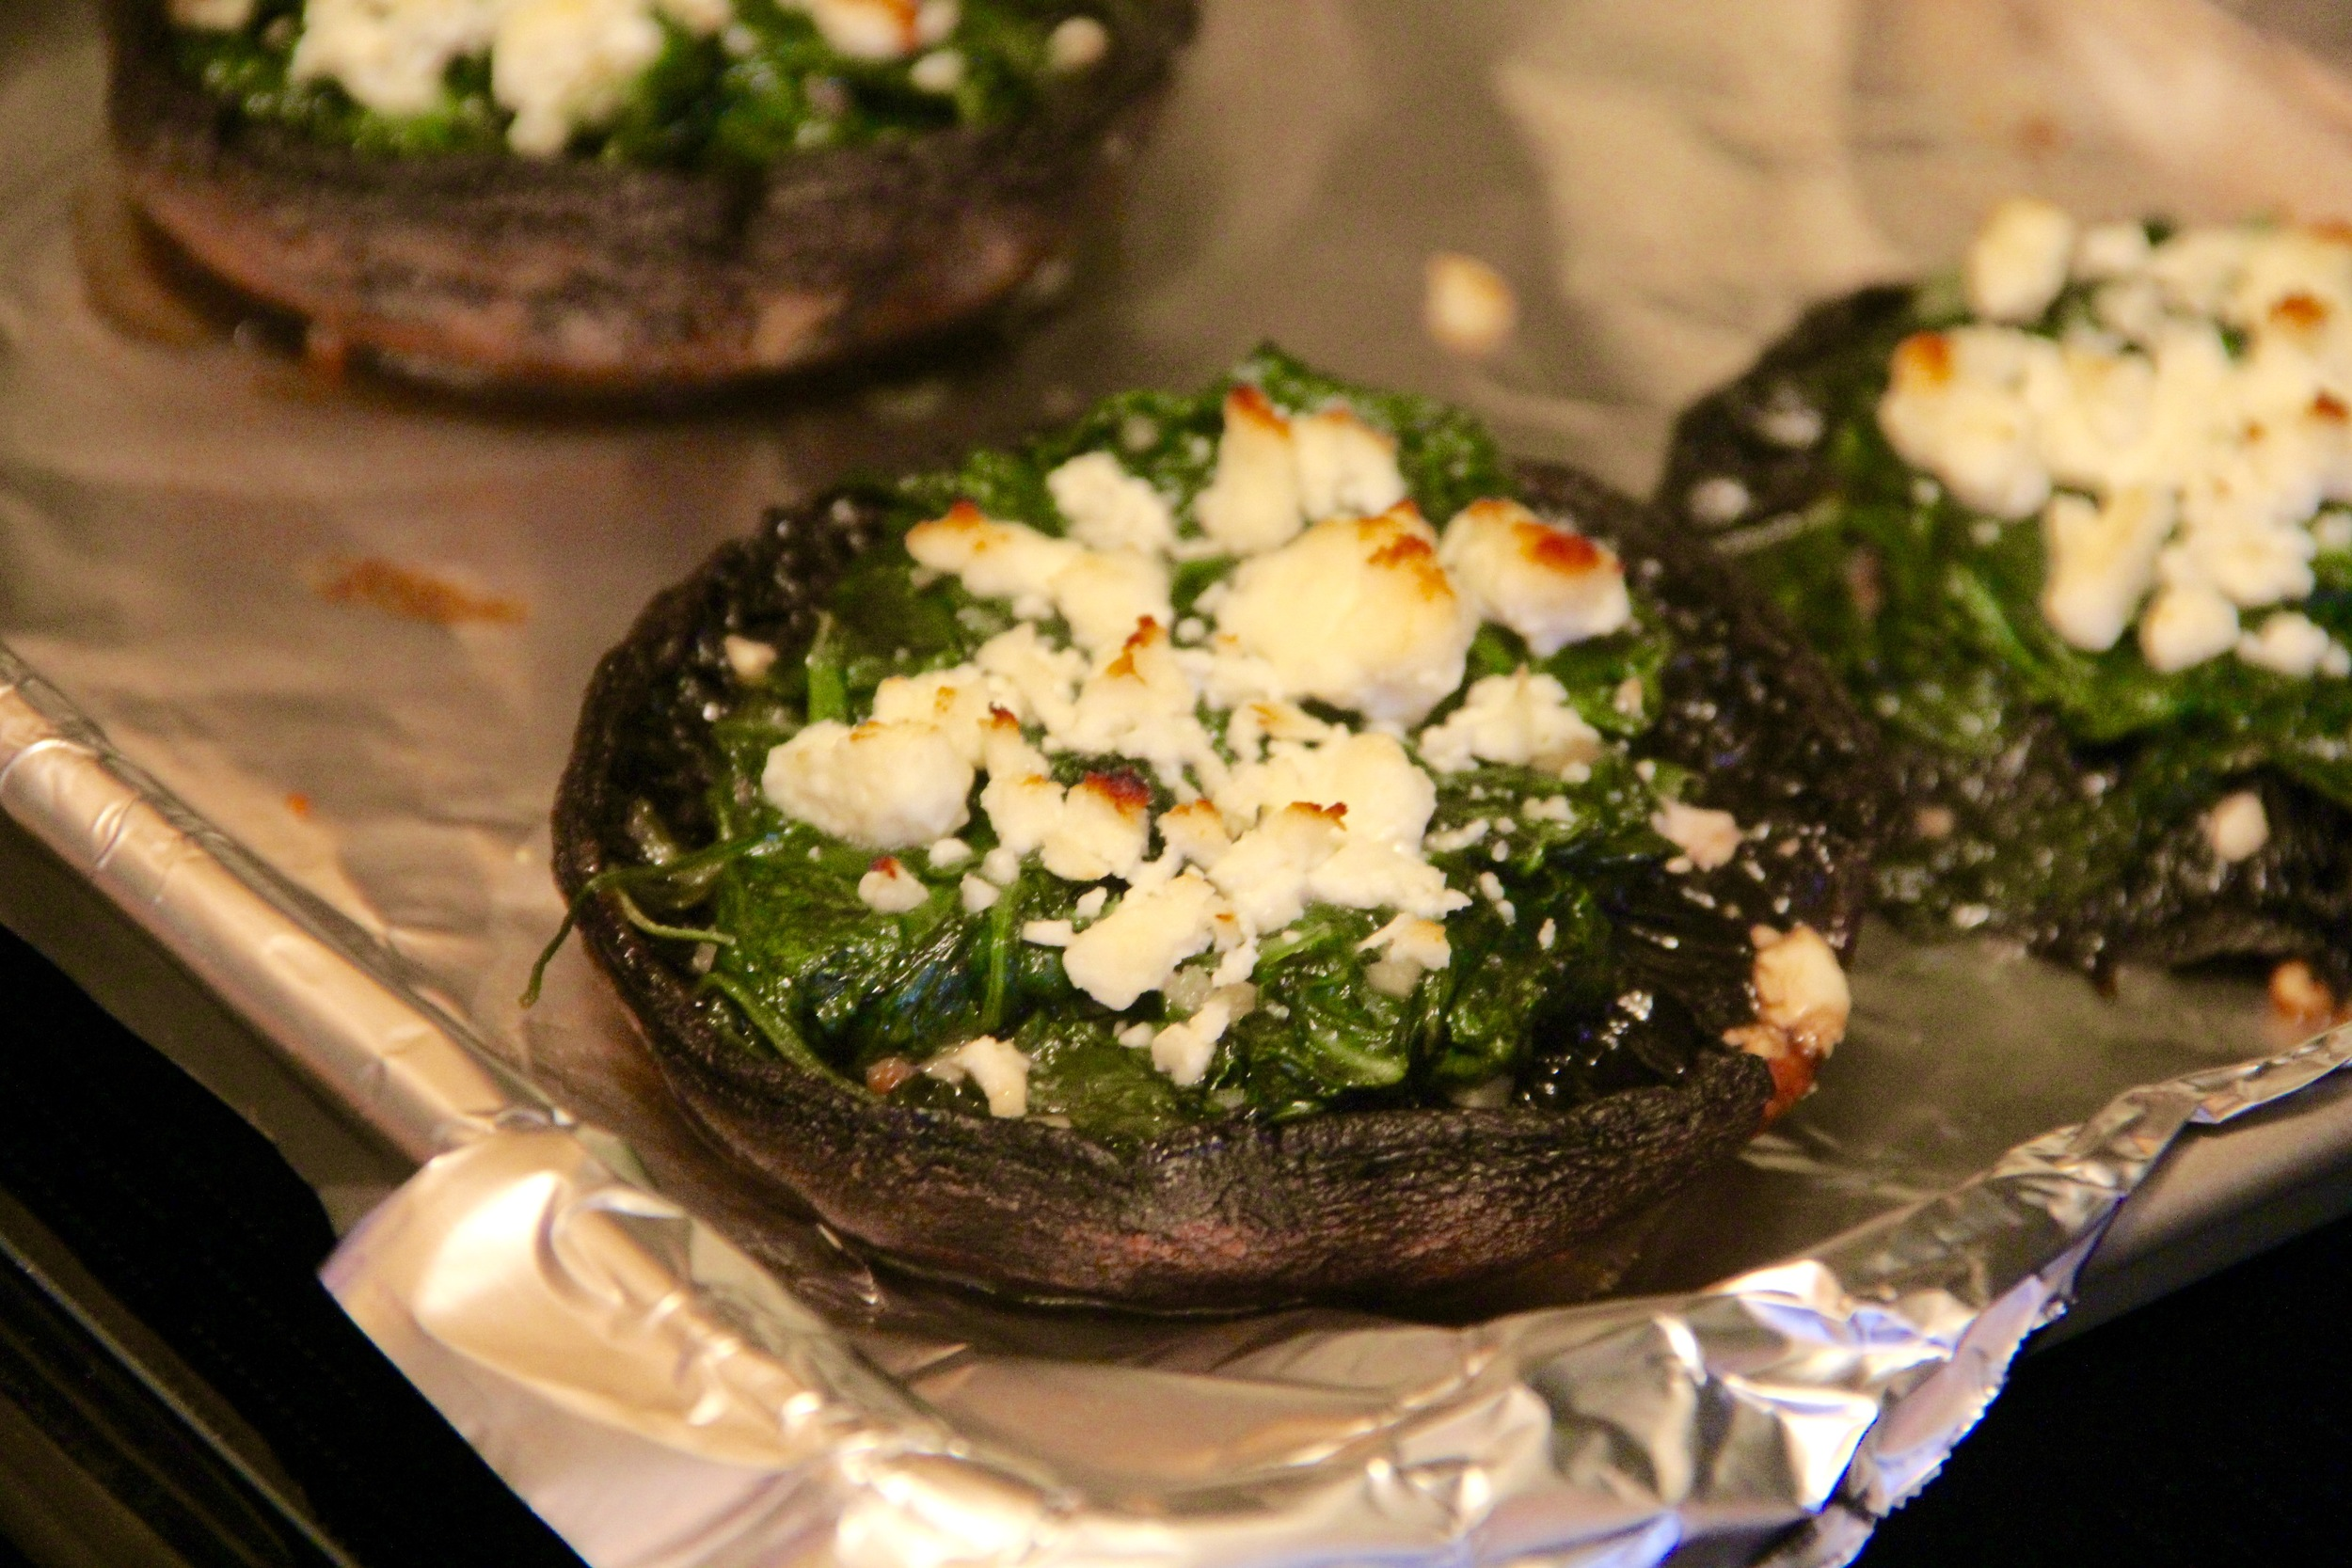 Healthy Portobello Mushroom Recipe 10.jpg